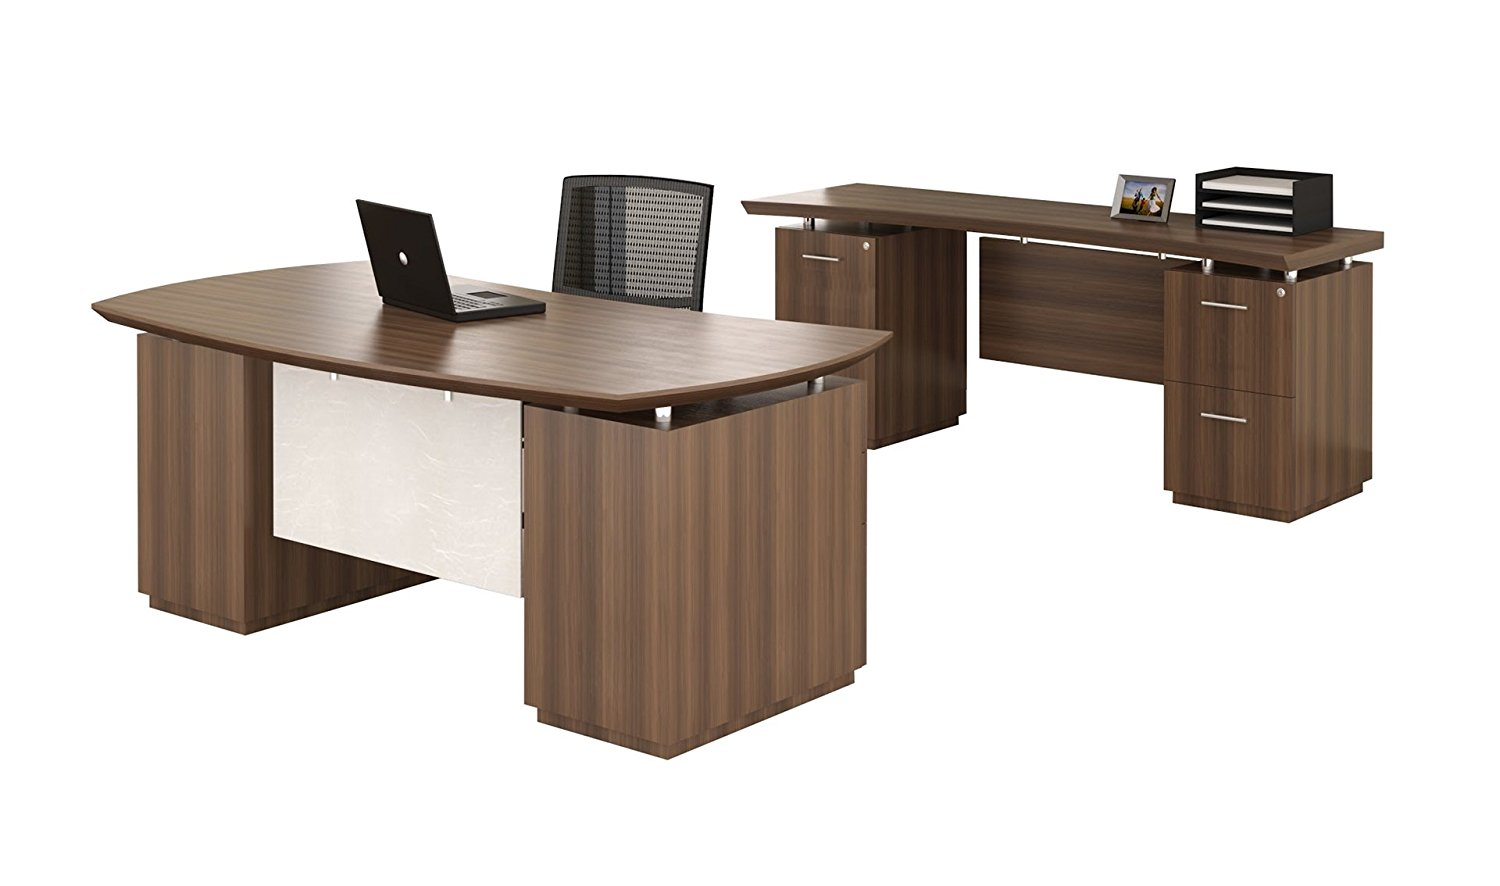 "Mayline Desk & Credenza Set Desk Dimensions: 72""W X 39""D X 29.5""H Credenza Dimensions: 72""W X 24""D X 29.5""H Both Desk & Credenza Feature 1 5/8"" Thick Work Surface - Textured Brown Sugar"